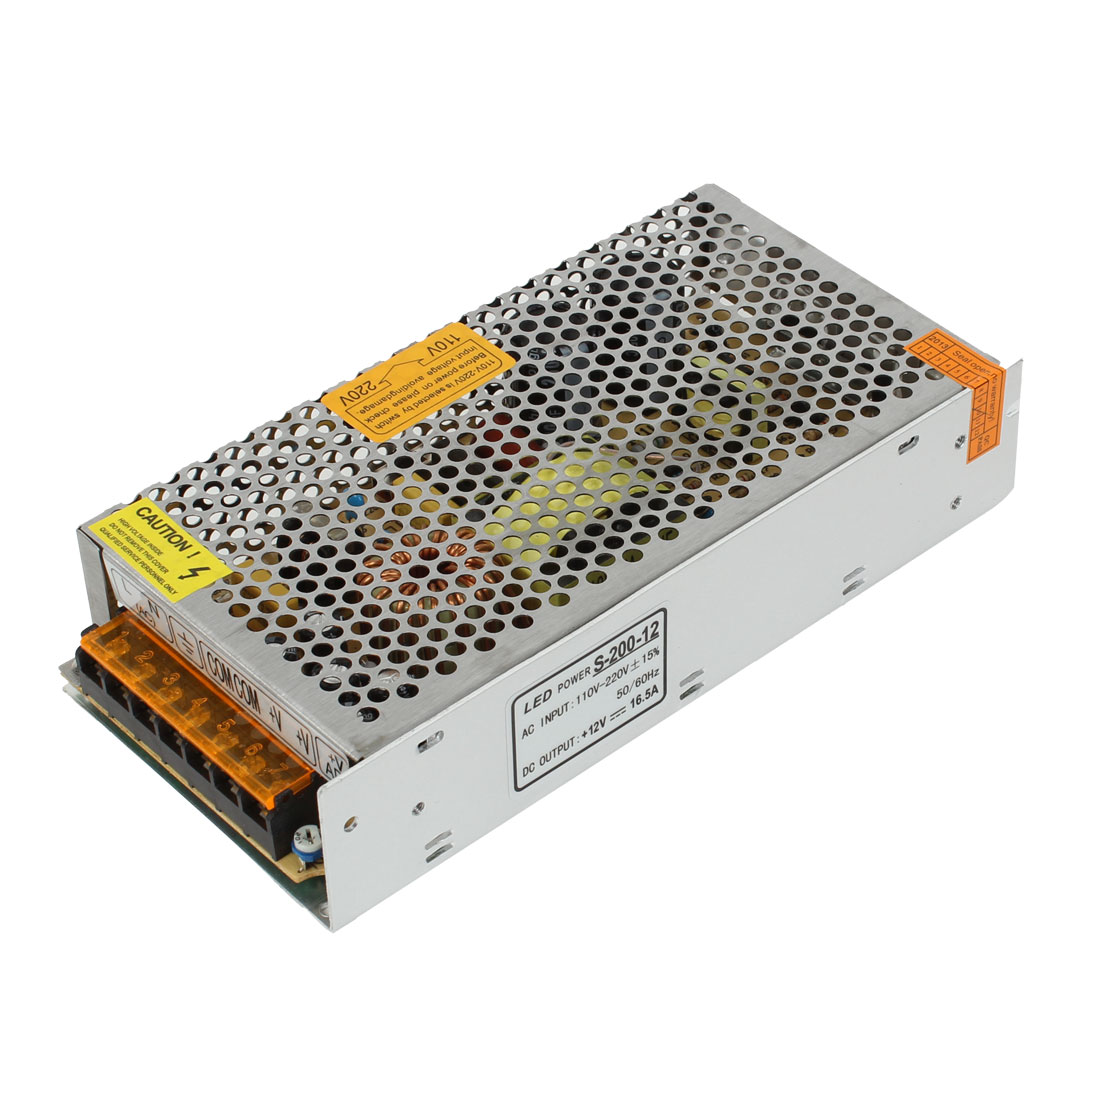 DC 12V 16.5A Regulated Switching Power Supply Converter S-200-12 for LED Strips Lights